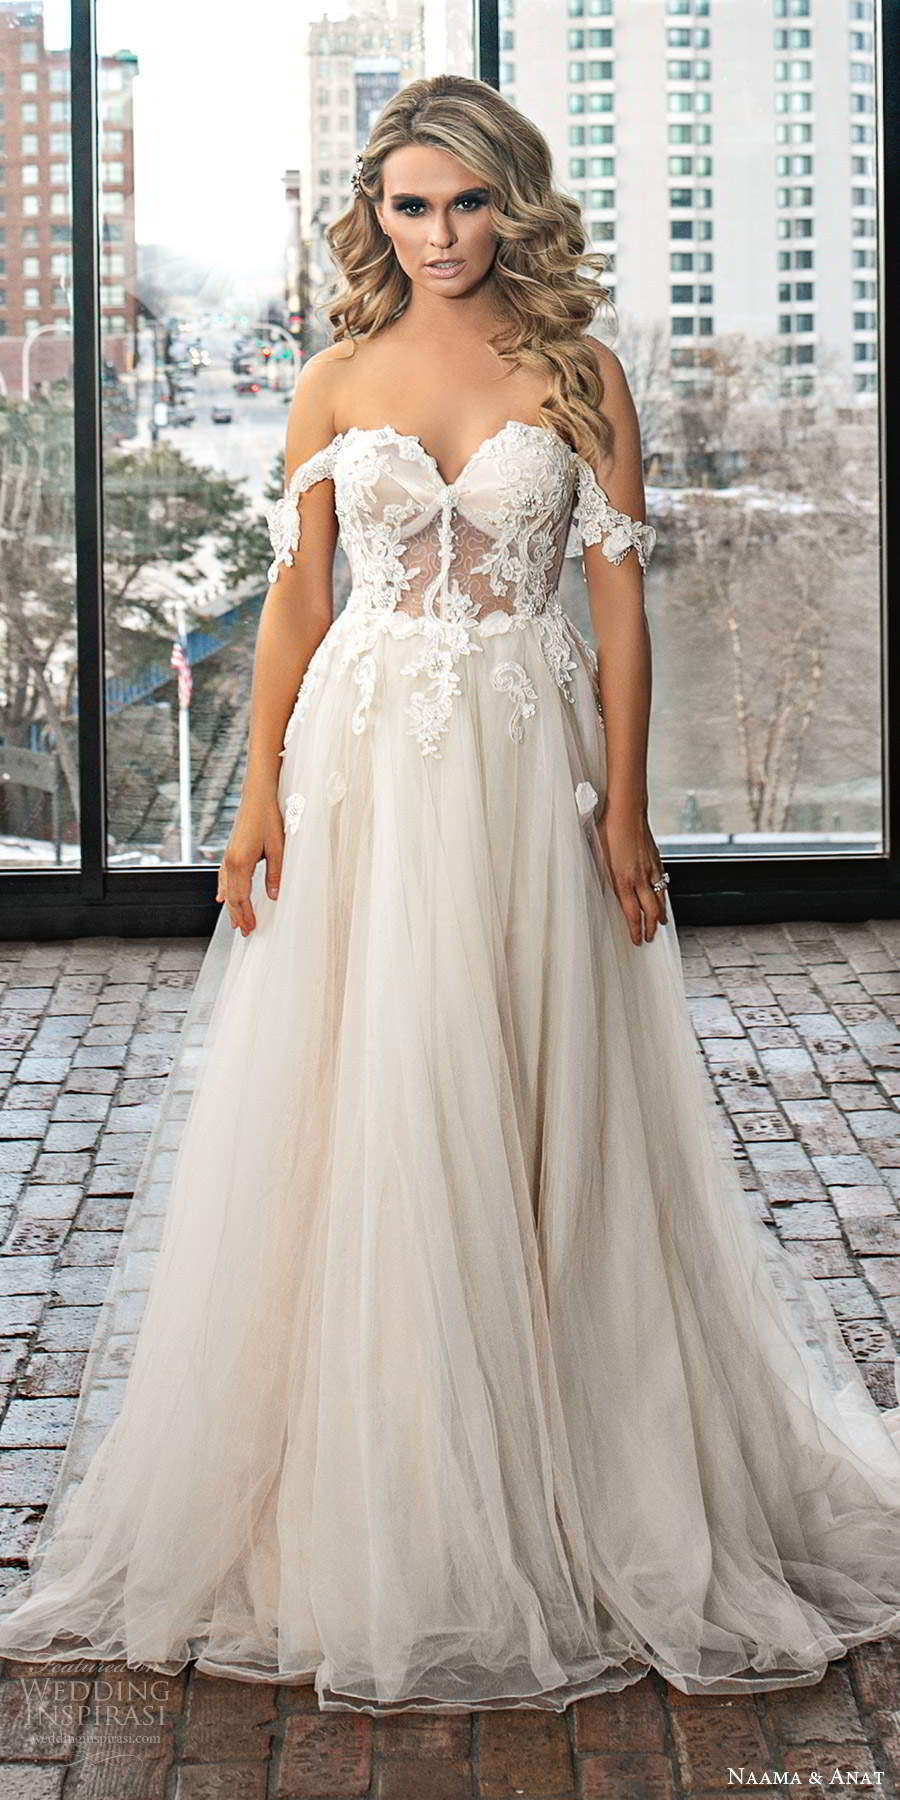 naama and anat 2020 silhouette bridal off shoulder straps sweetheart neckline embellished sheer bodice a line princess ball gown wedding dress chapel train (10) mv